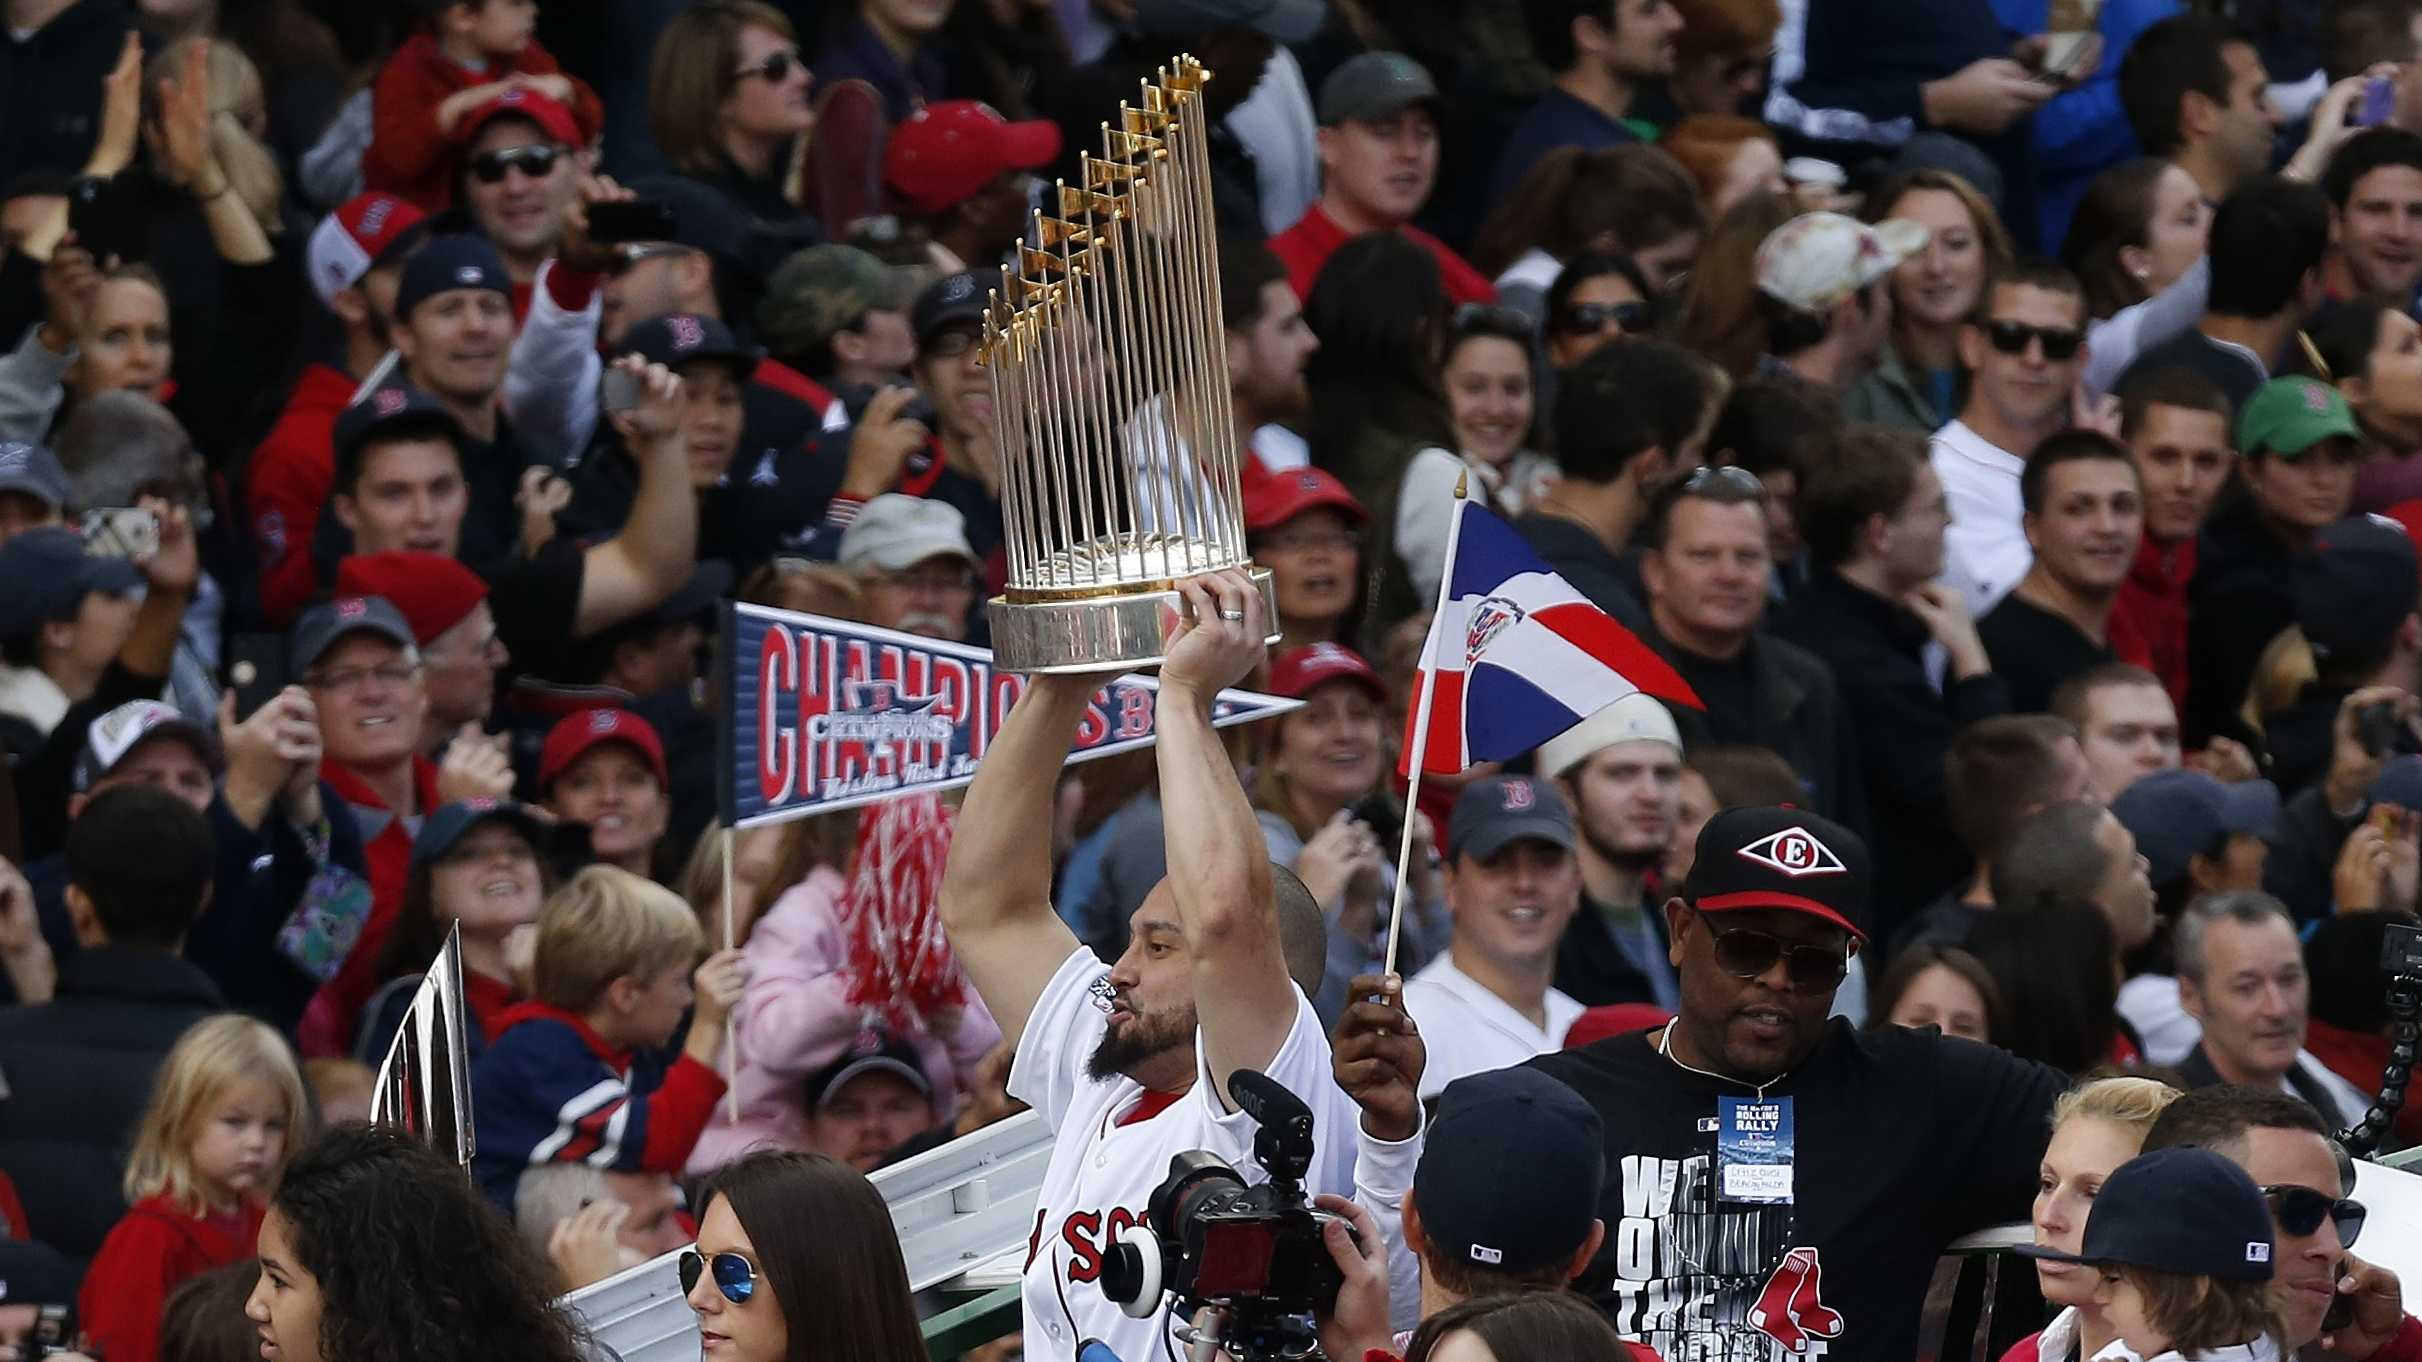 Boston Red Sox's Shane Victorino holds the World Series trophy from on Duck Boat during a victory parade celebrating the team's third World Series title since 2004, Saturday, Nov. 2, 2013, in Boston.